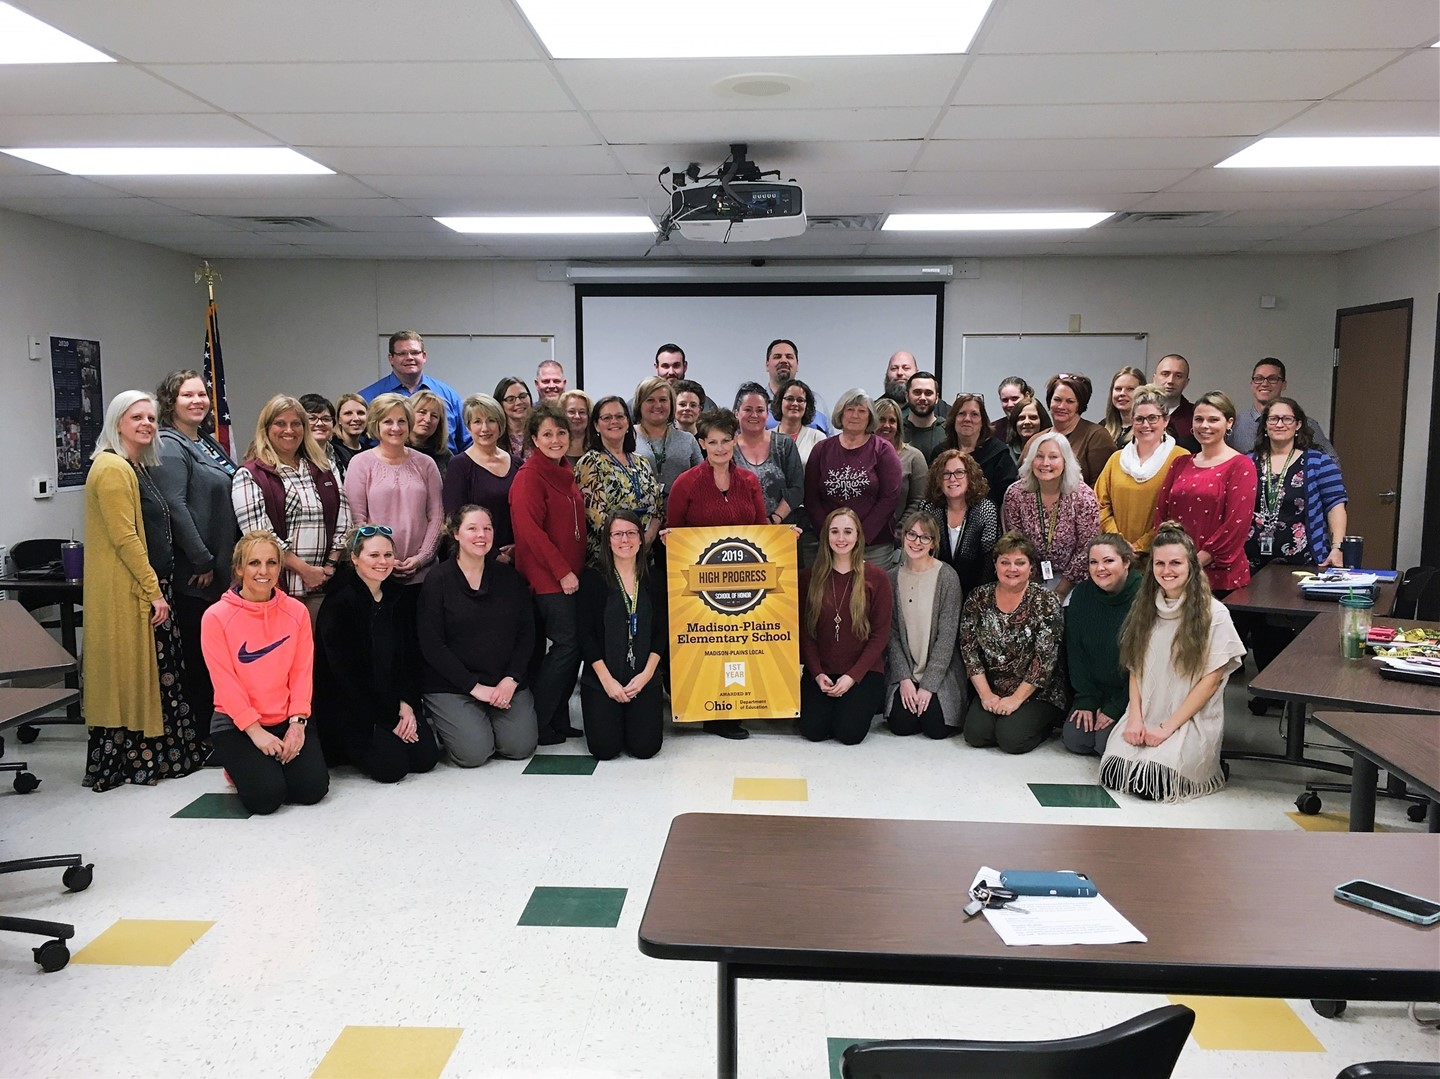 Congratulations to our Elementary Staff on earning the High Progress Award!